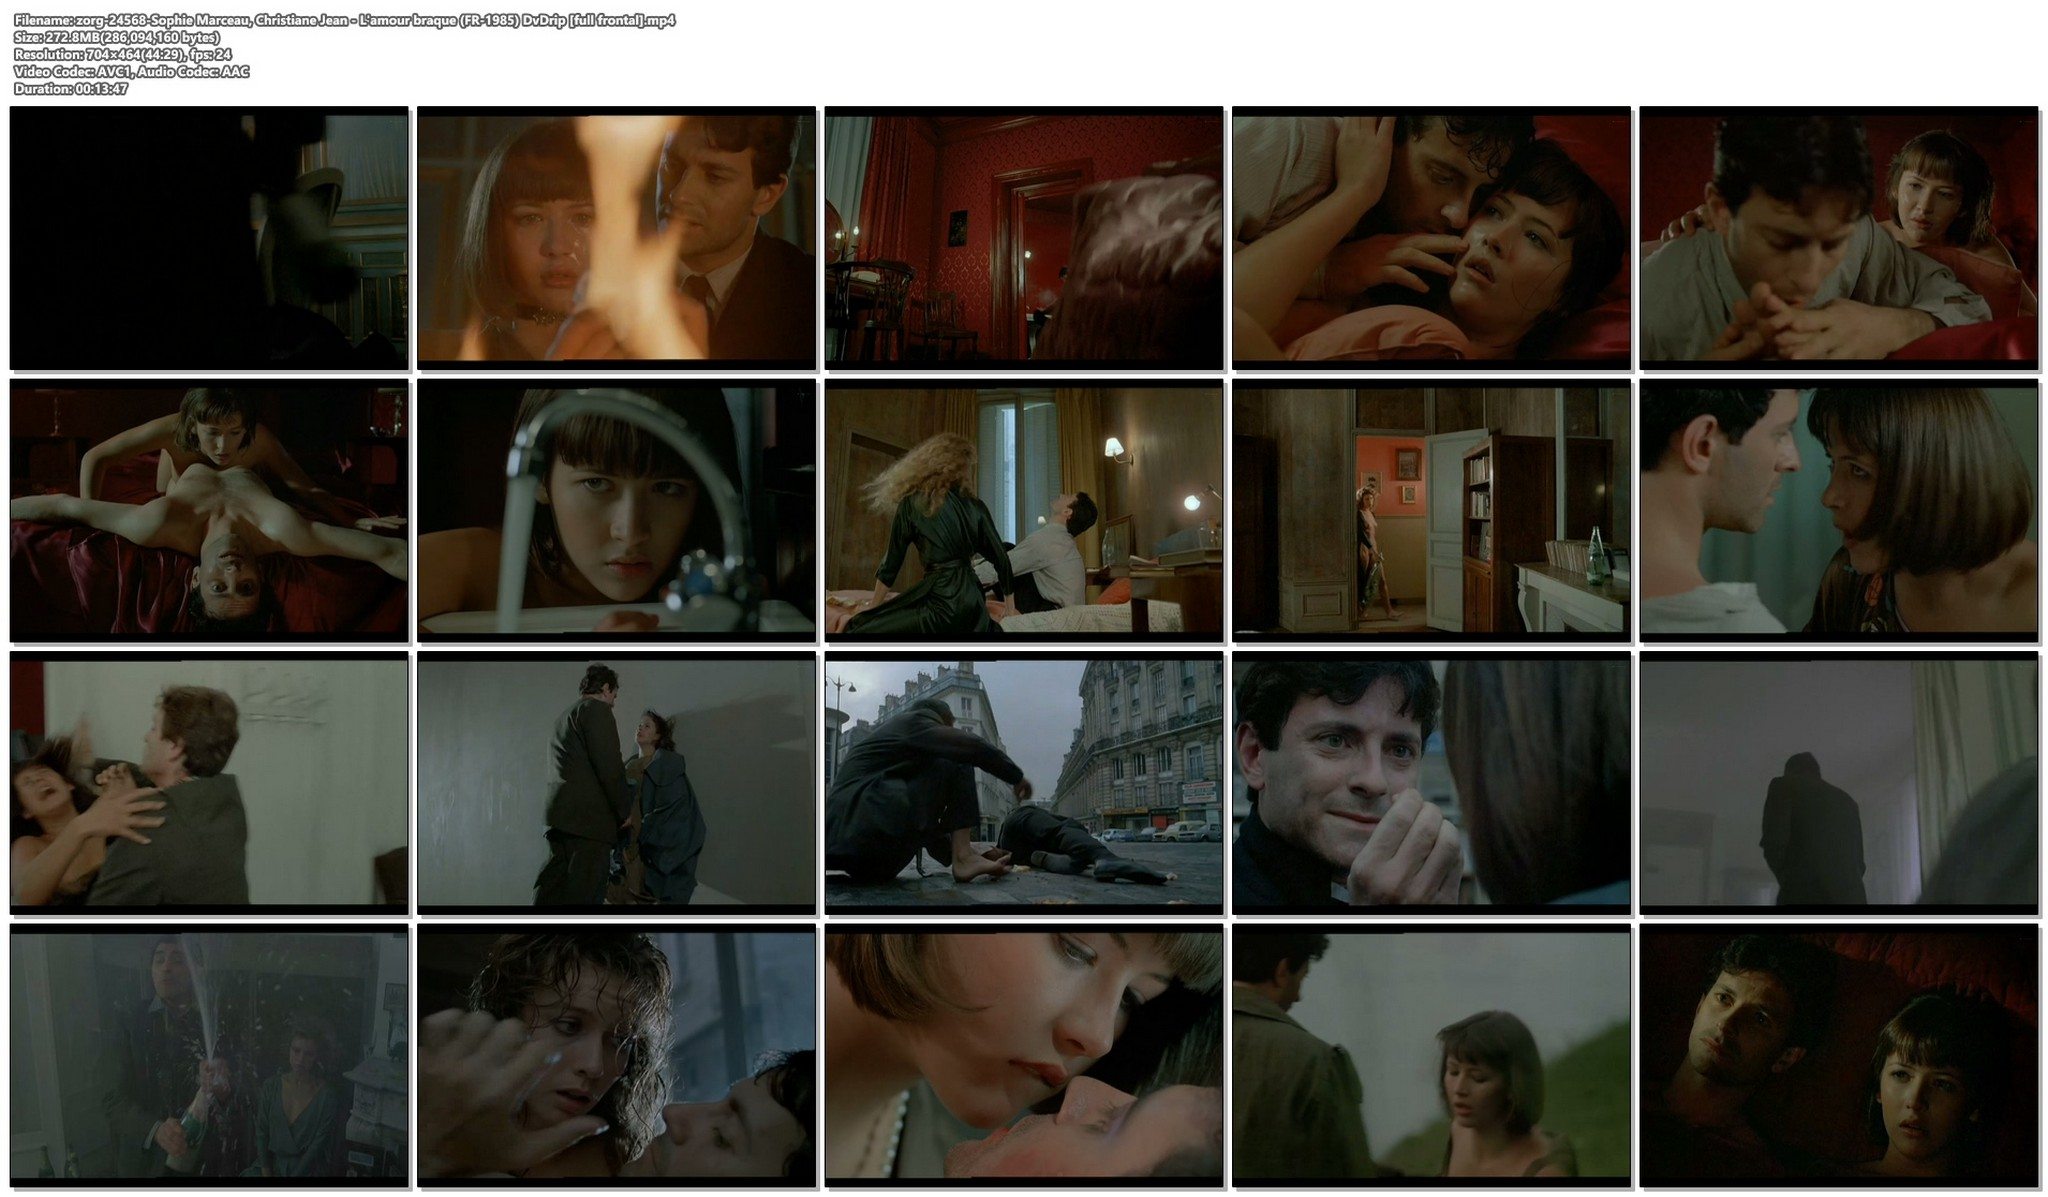 Sophie Marceau nude full frontal Christiane Jean nude too Lamour braque FR 1985 DvDrip 019